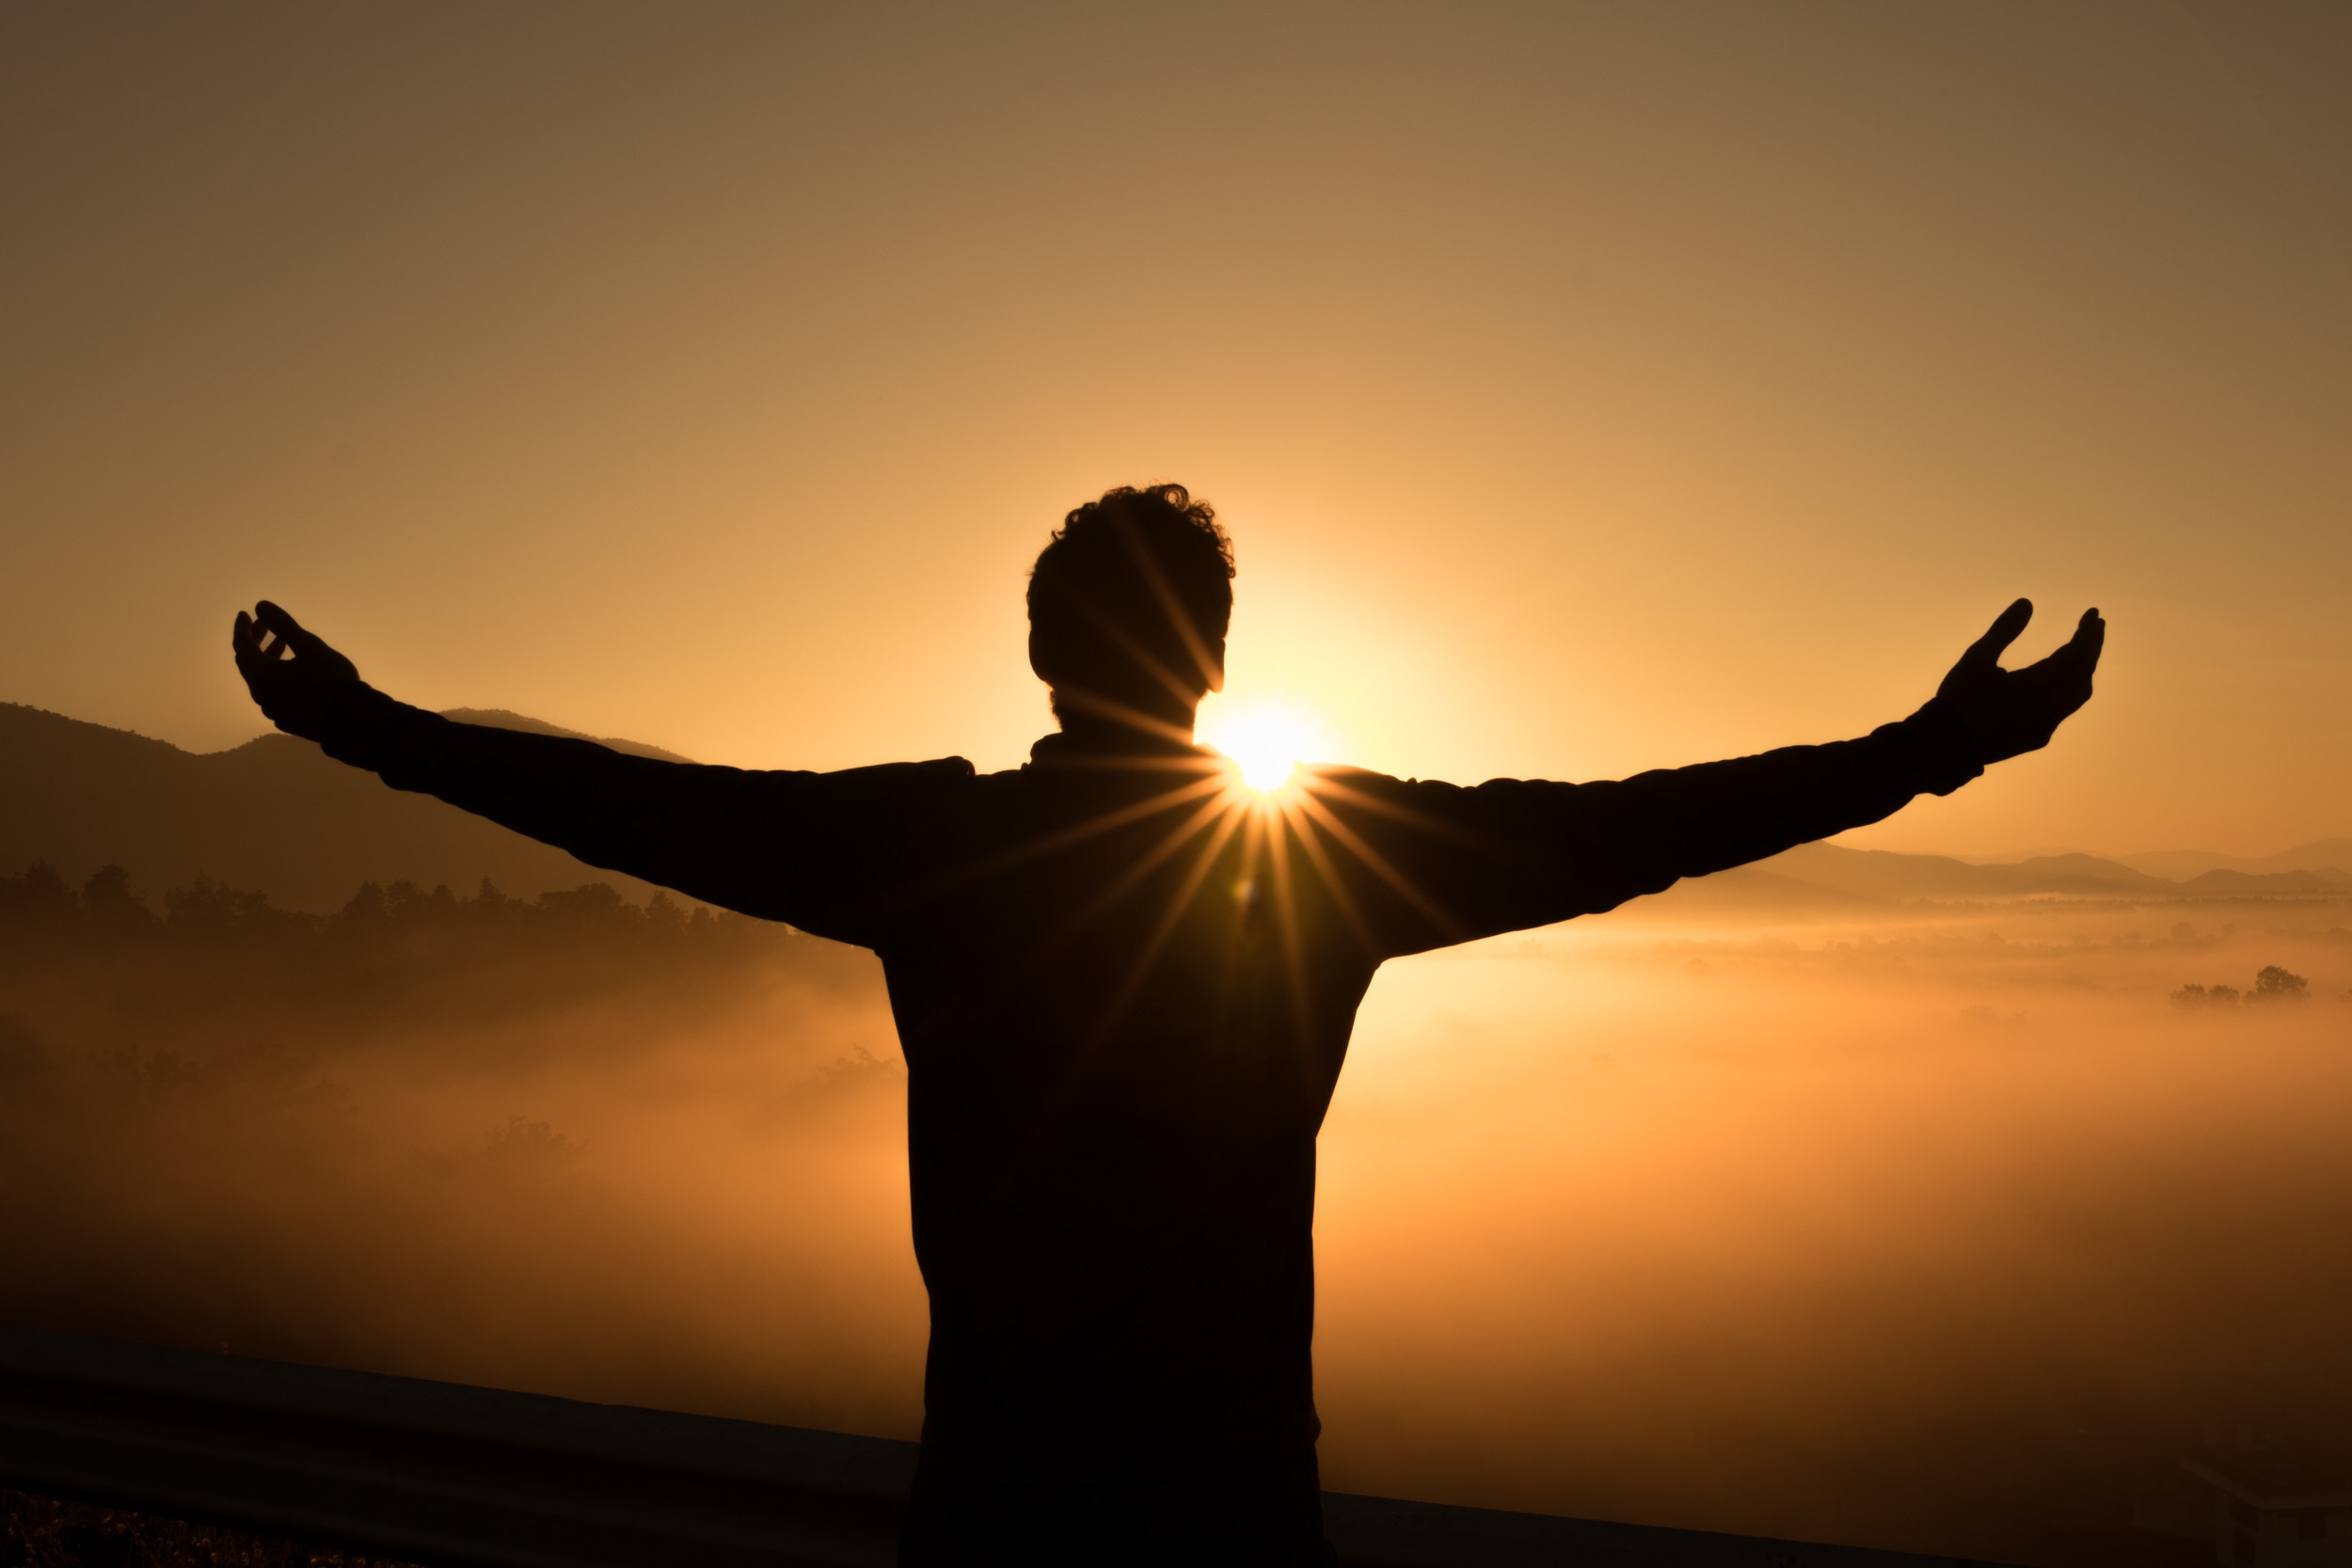 Photo by Zac Durant on Unsplash